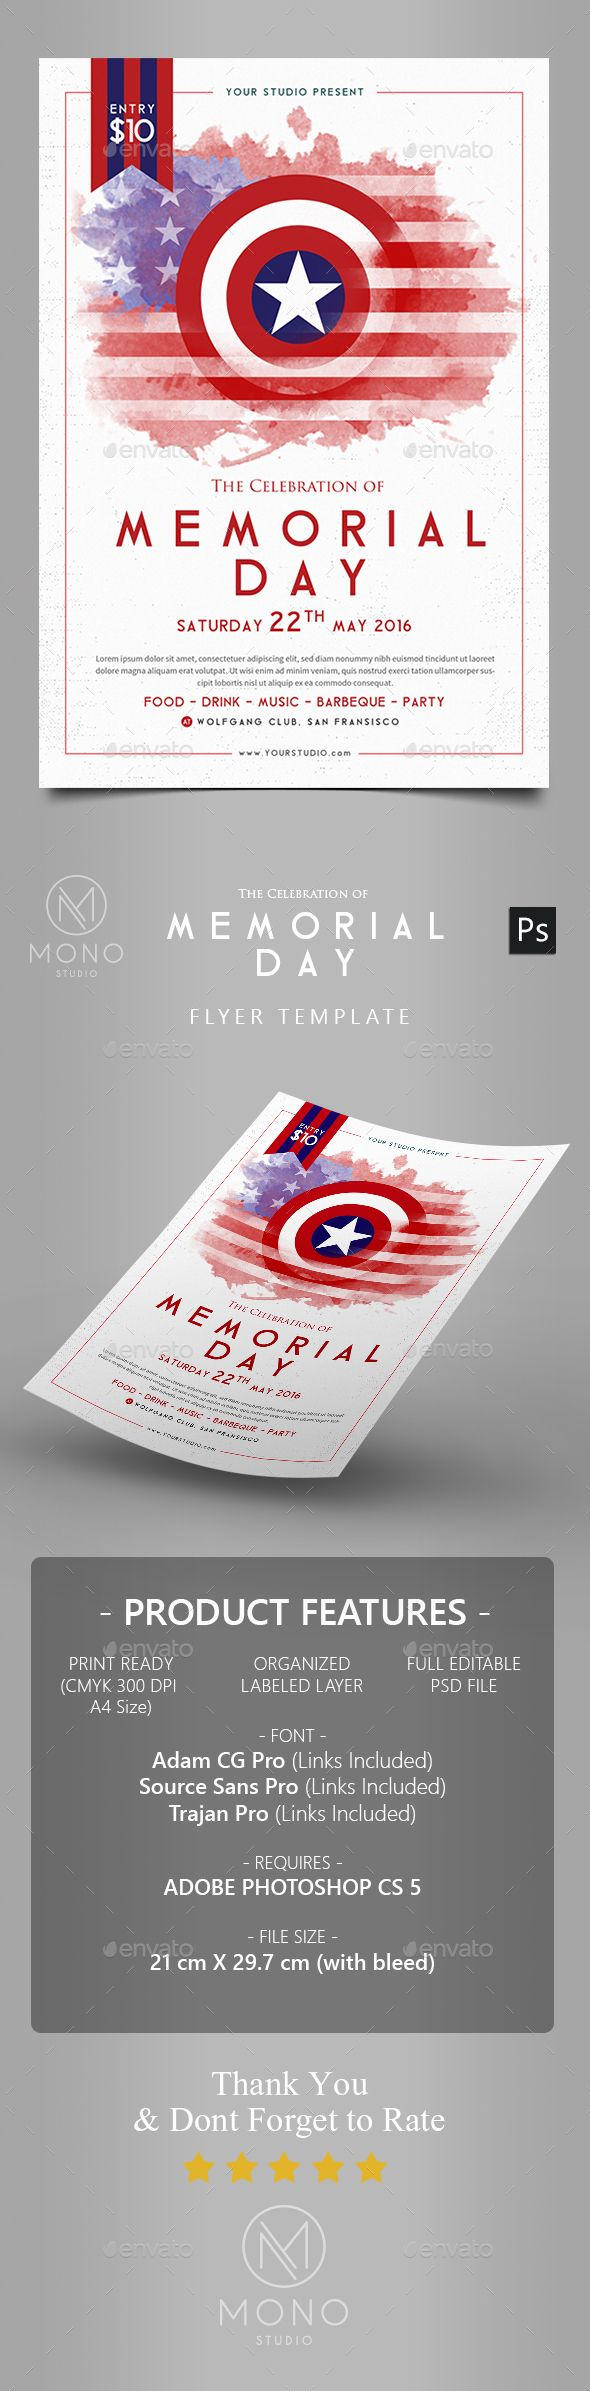 Best Flyers Images On   Poster Designs Posters And